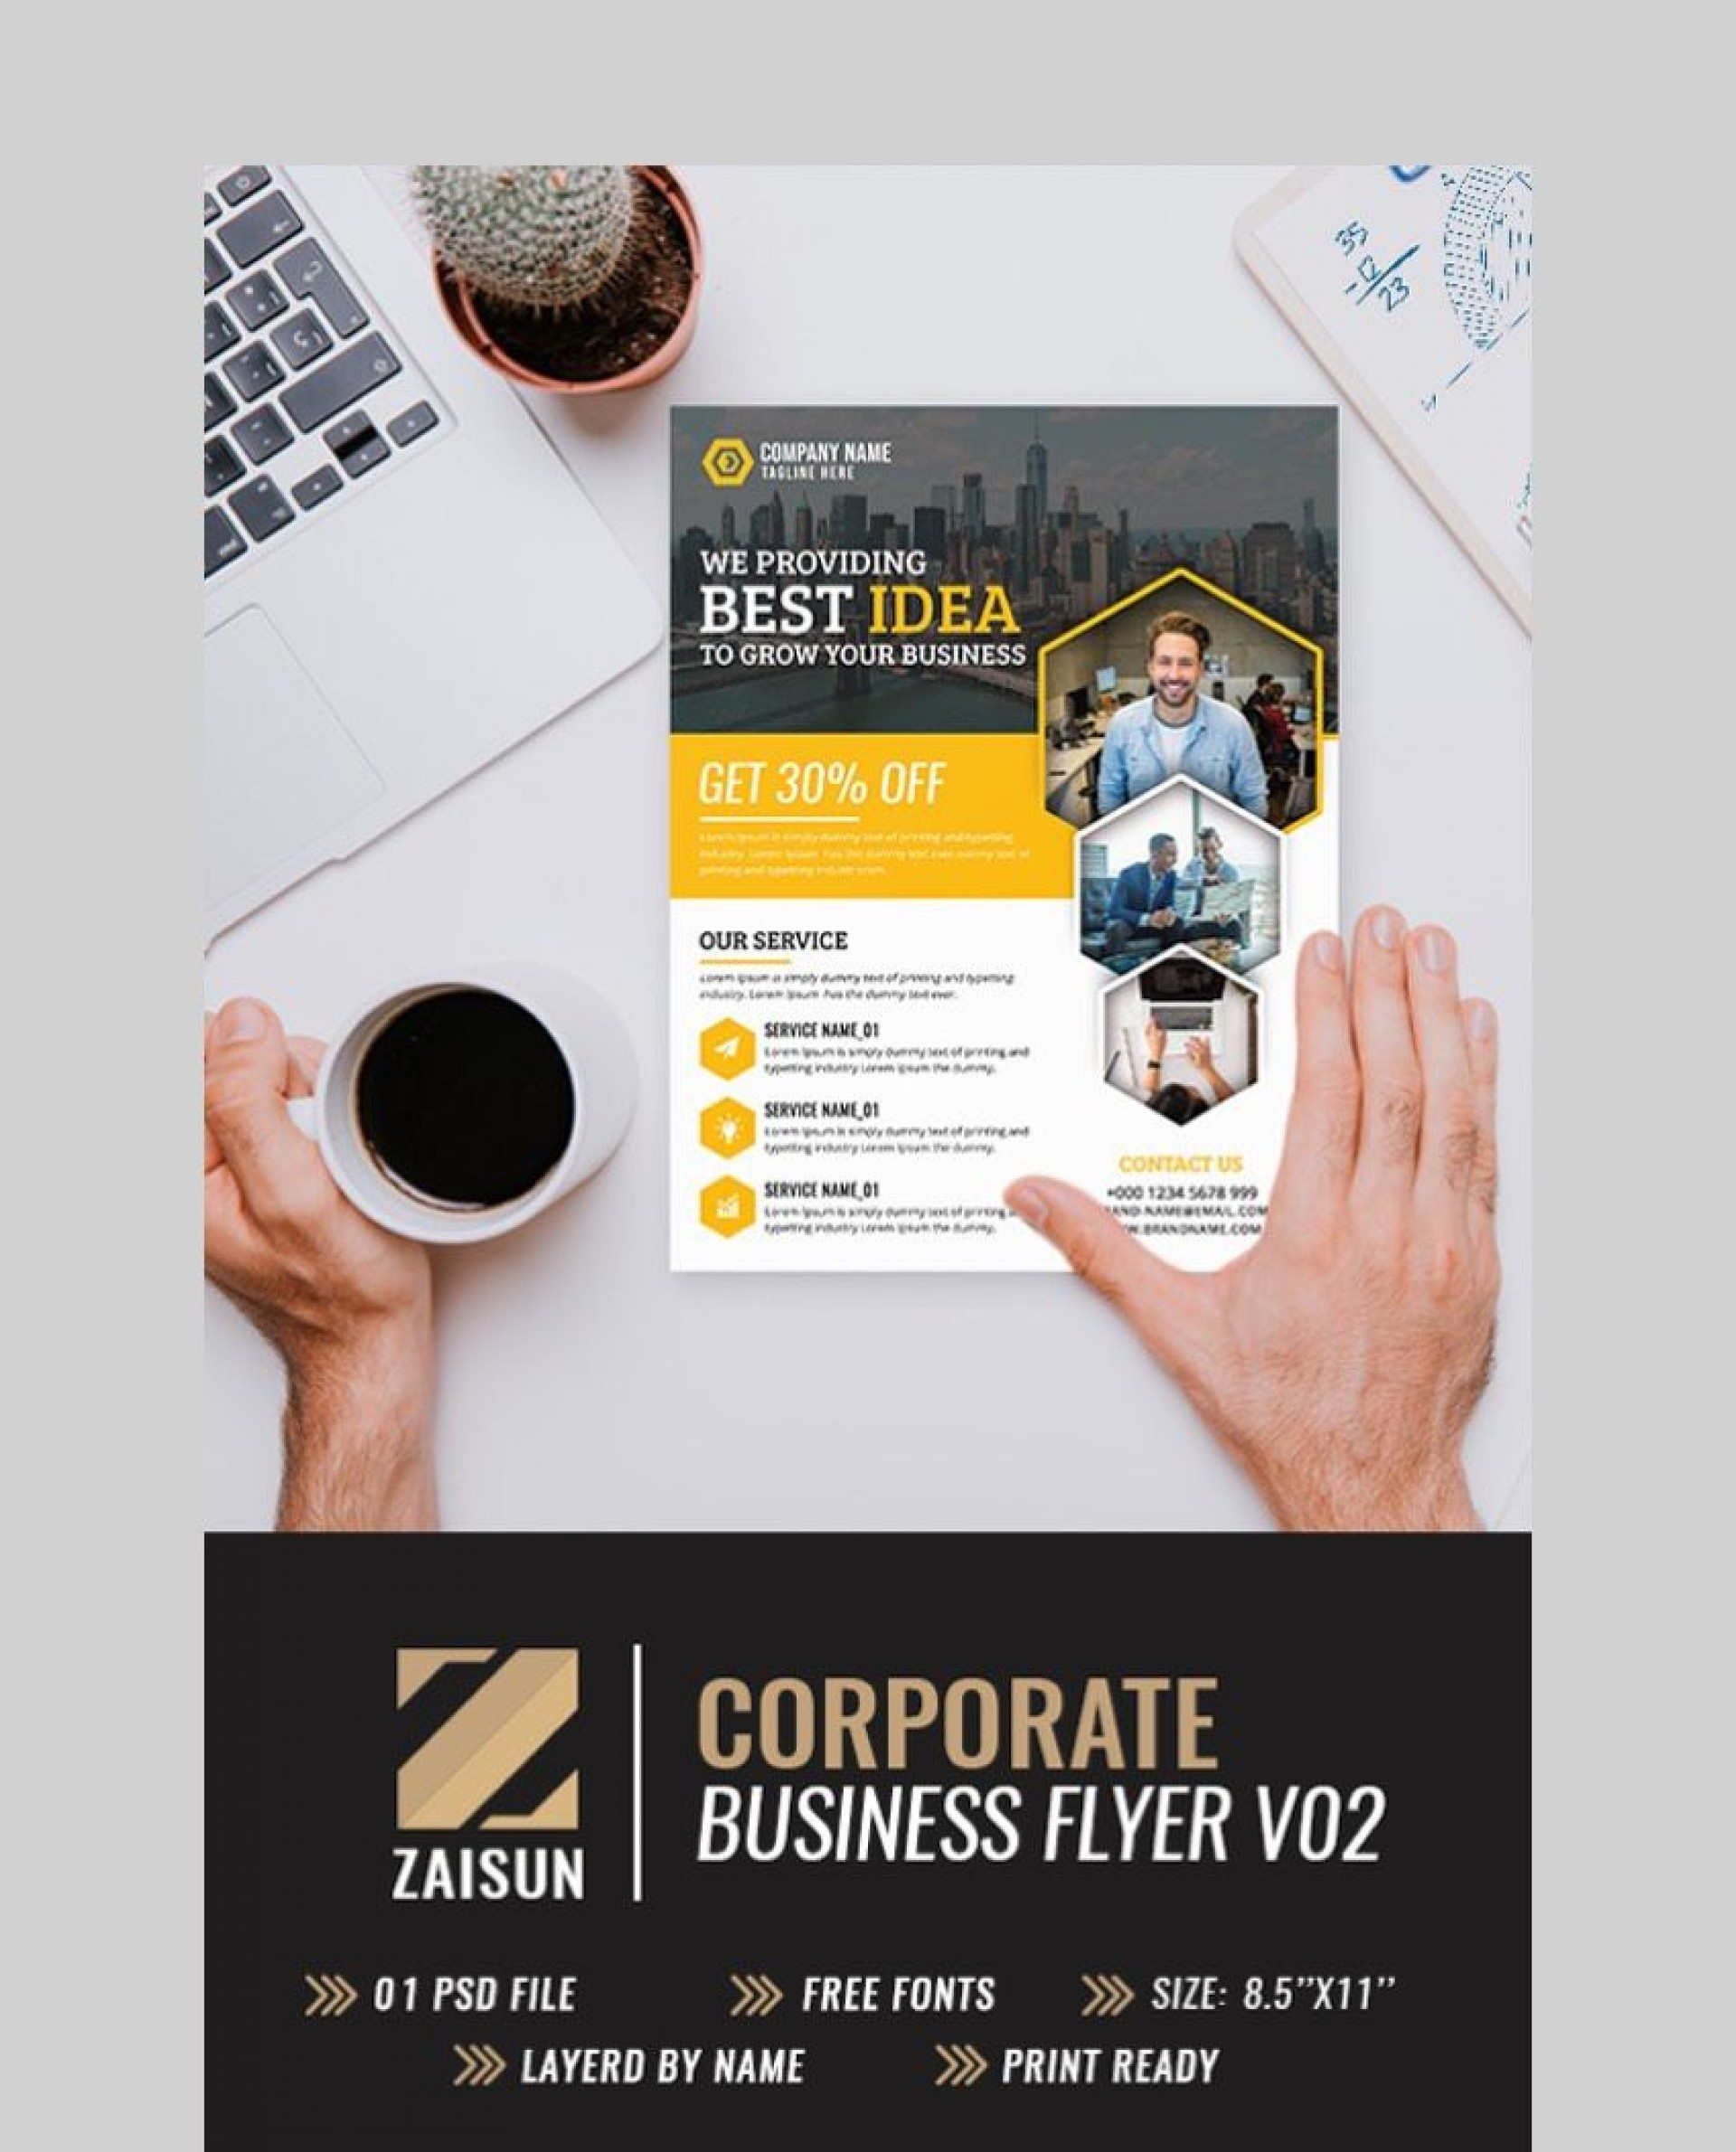 005 Formidable Busines Flyer Template Free Inspiration  Psd 2018 Vector Brochure Training1920